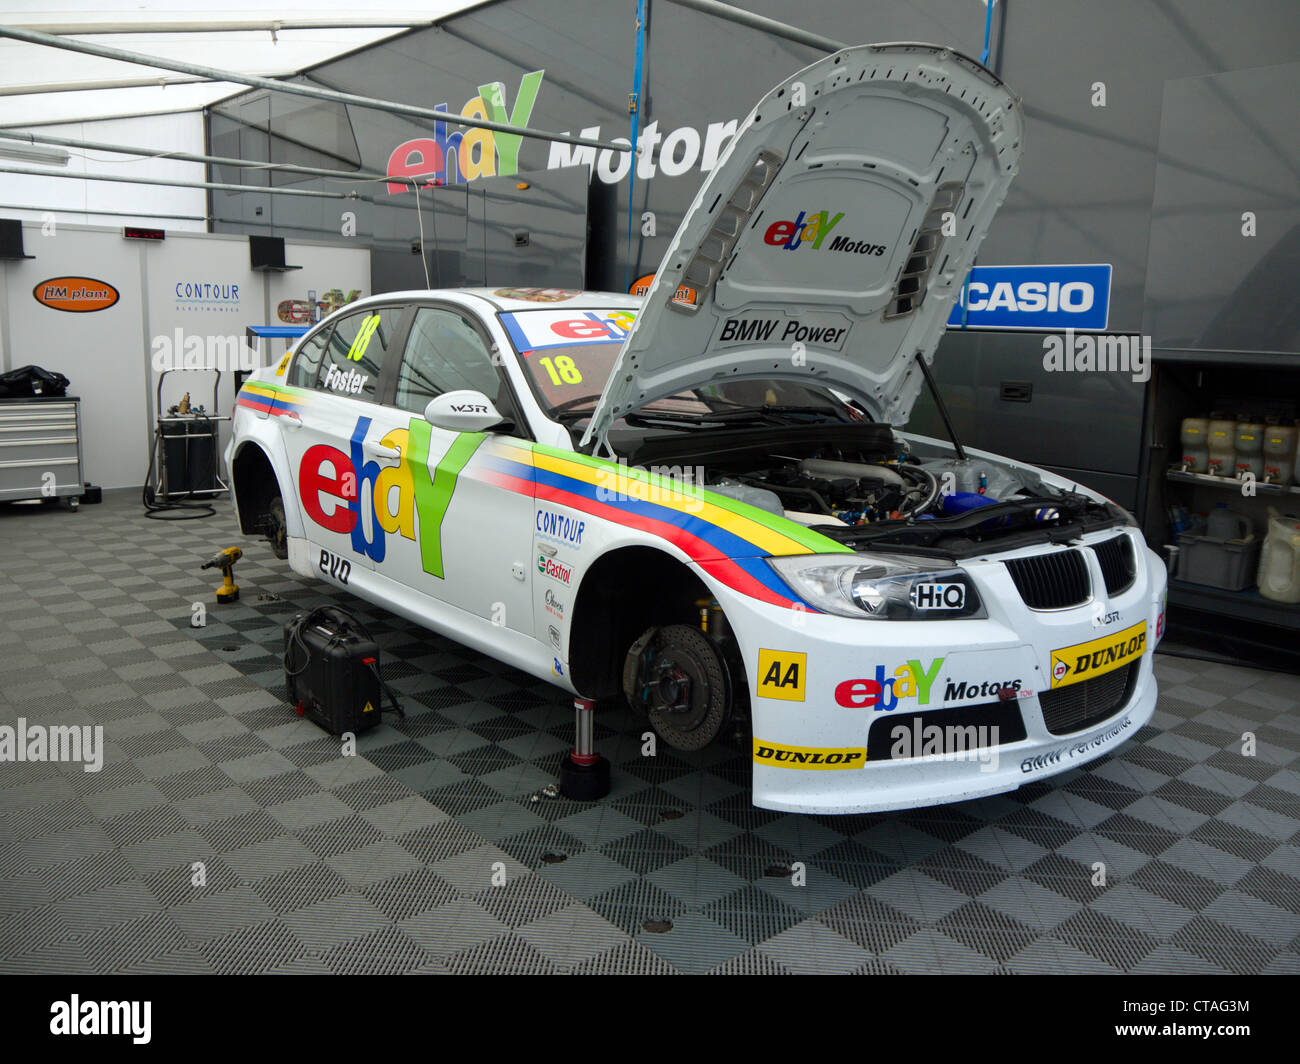 WSR, ebay motors BMW, British touring car Stock Photo: 49404648 - Alamy